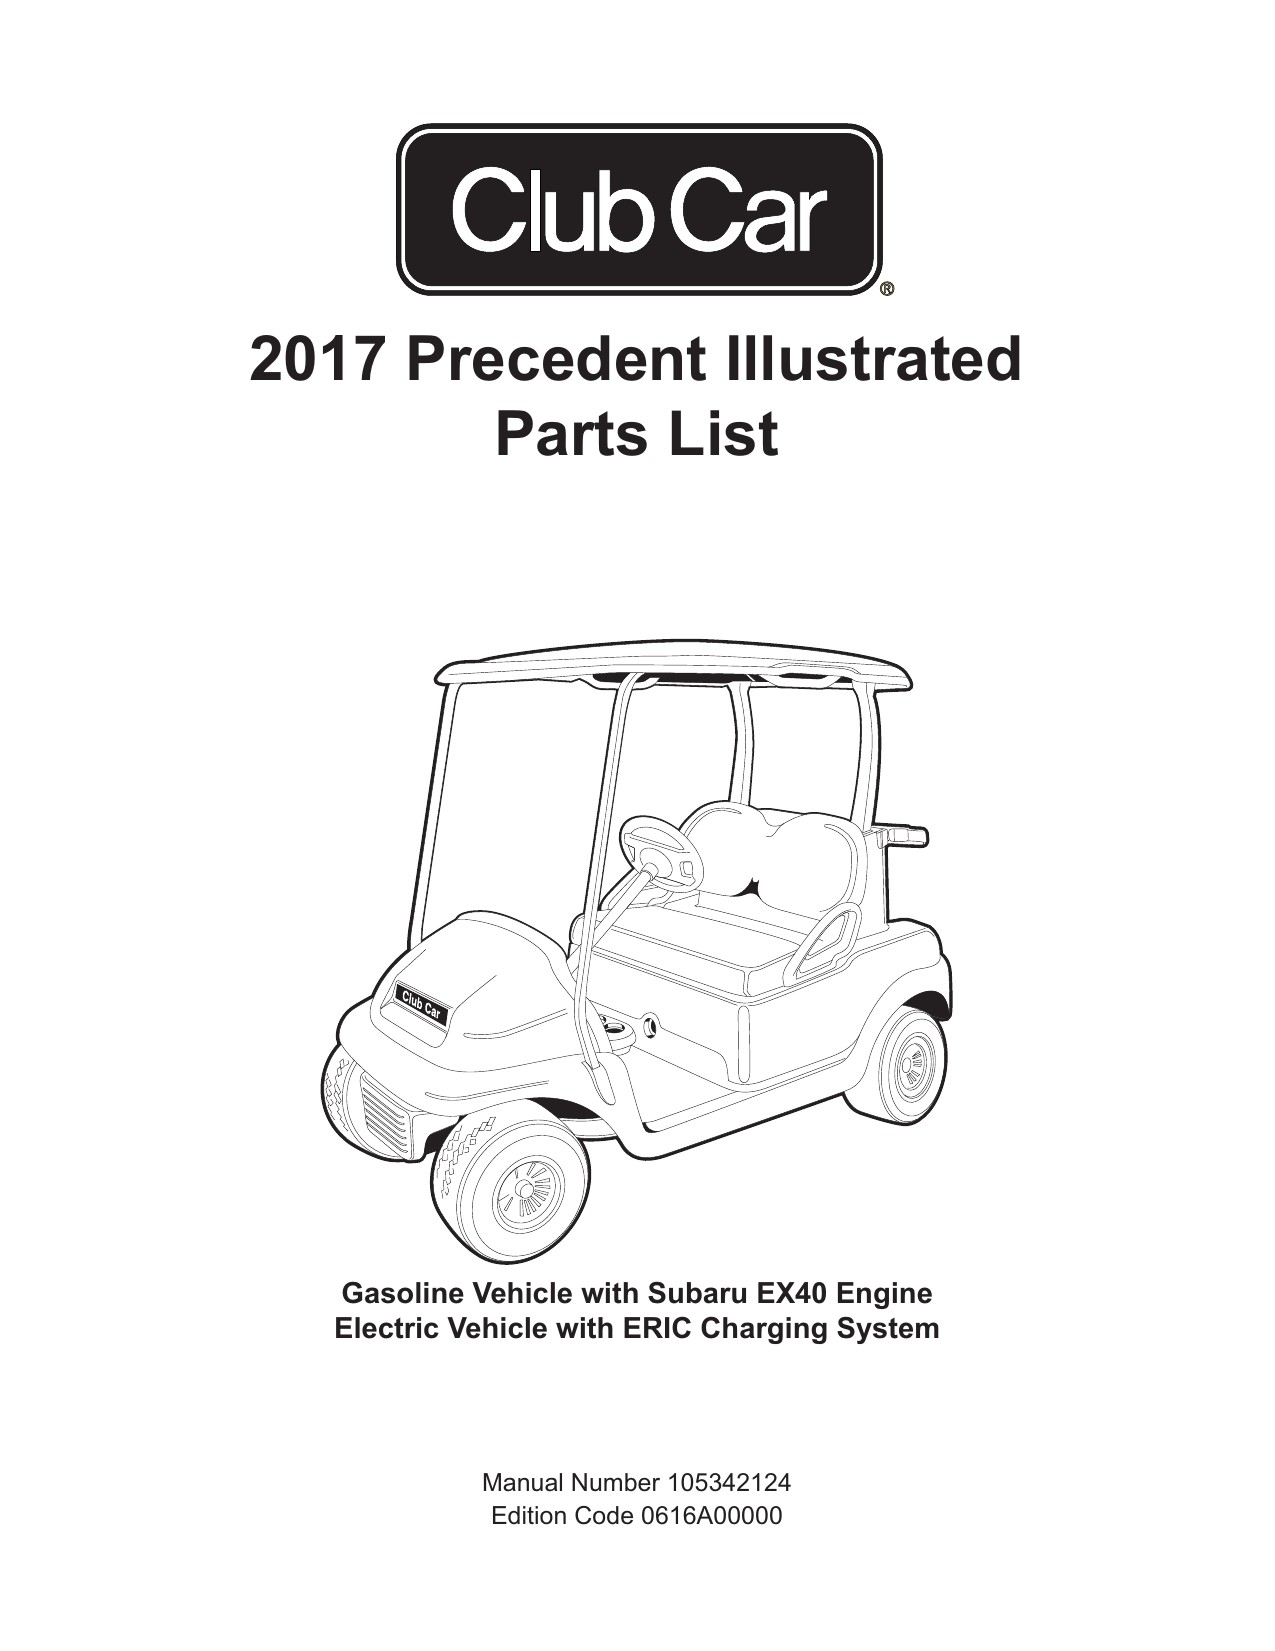 Adjusting the forward and Reverse Switch On Club Car 2017 Precedent Illustrated Parts List